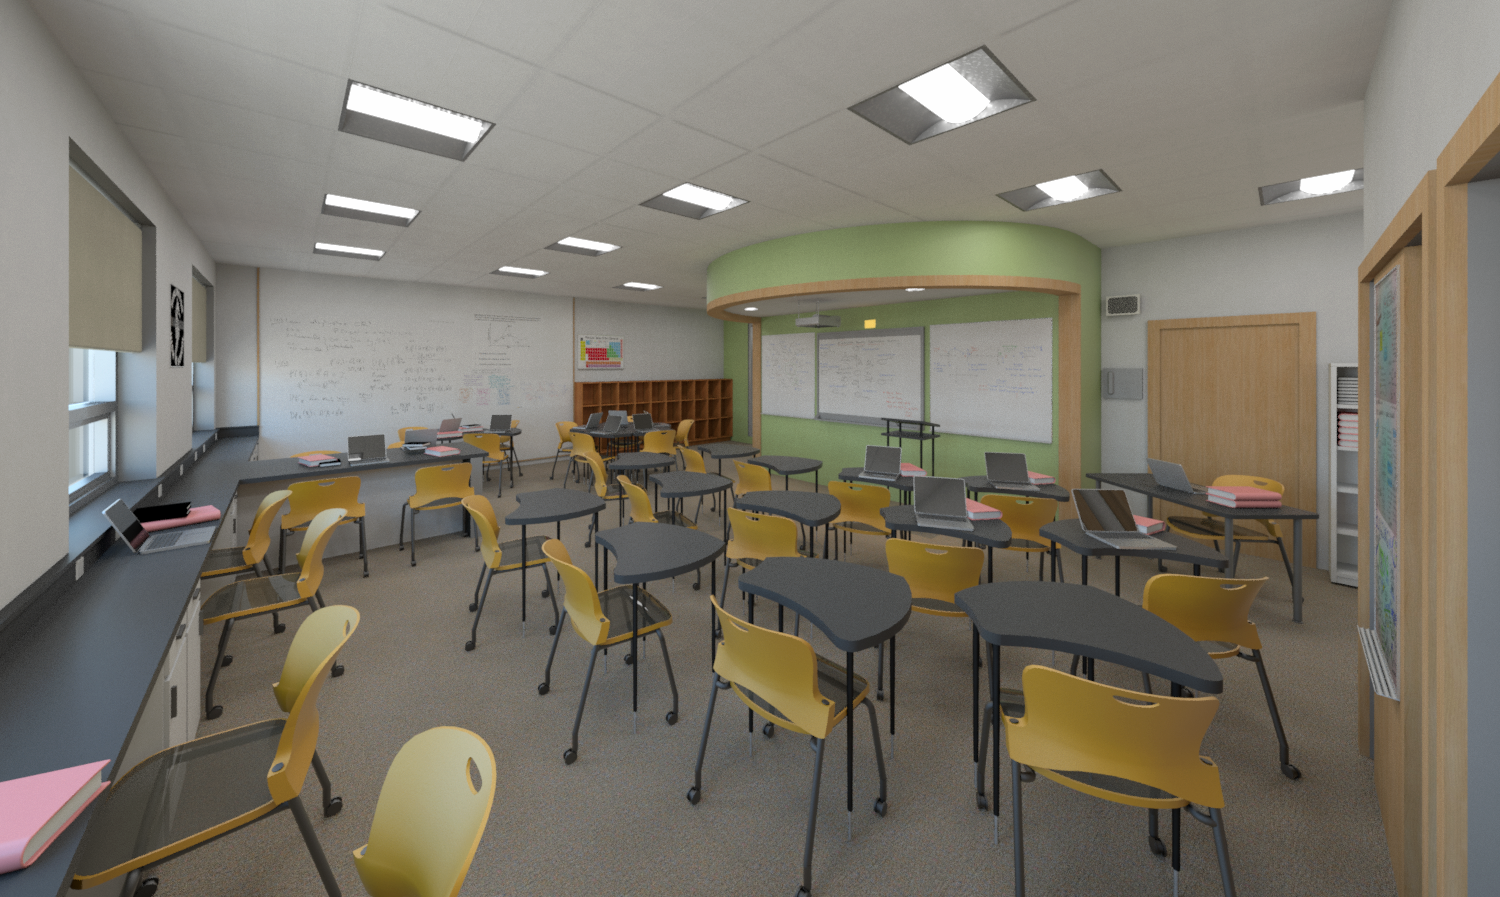 Classroom Concept Image